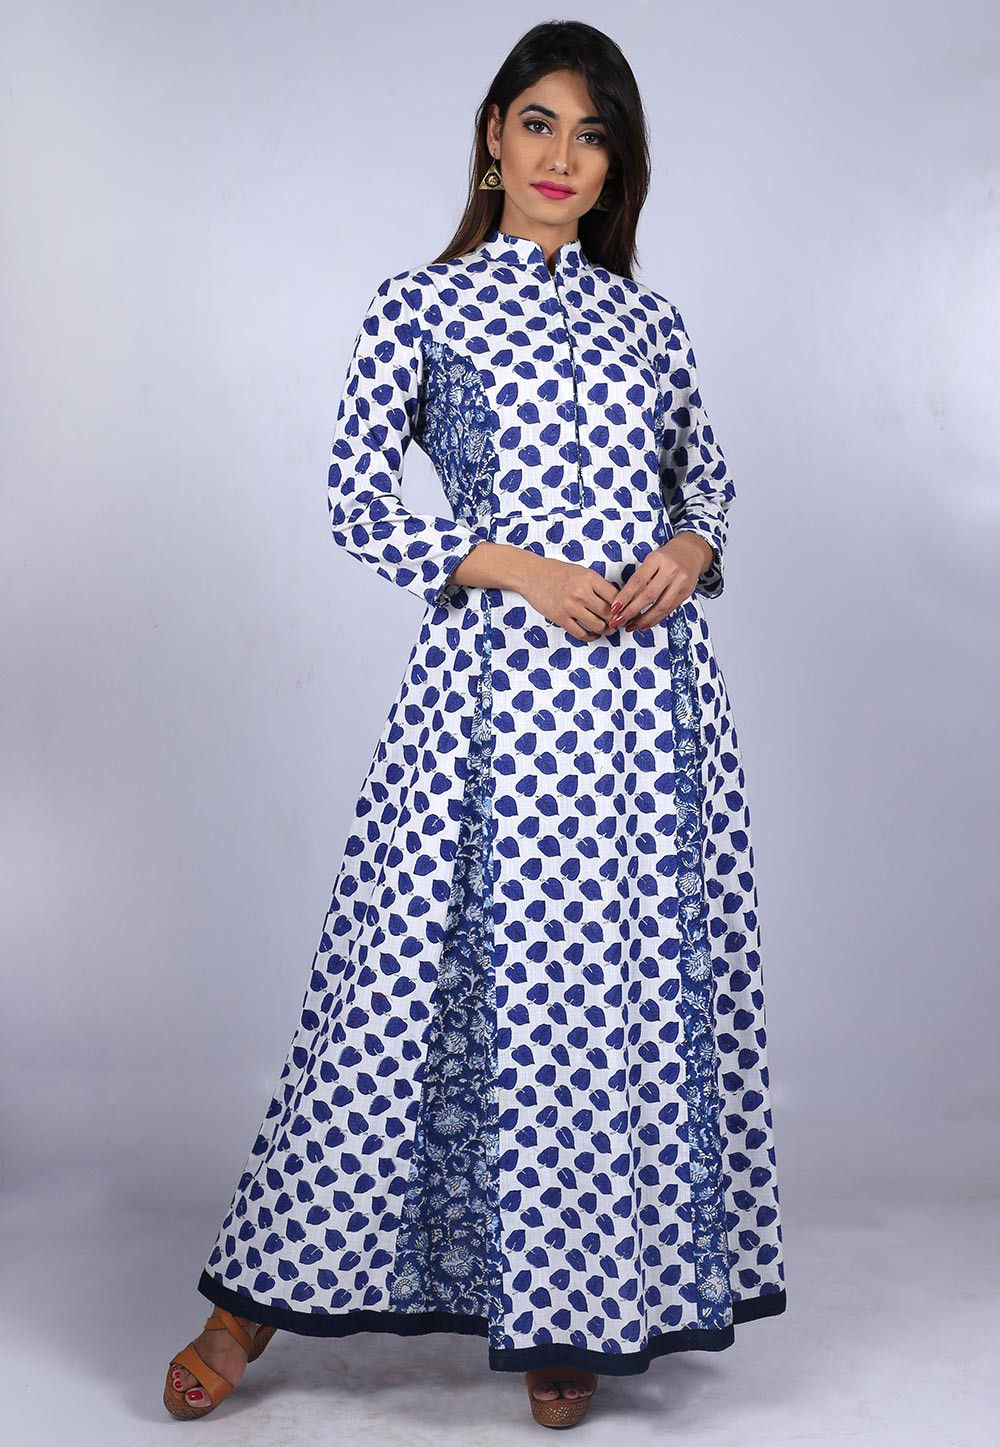 Block Printed Cotton Dress in White and Blue